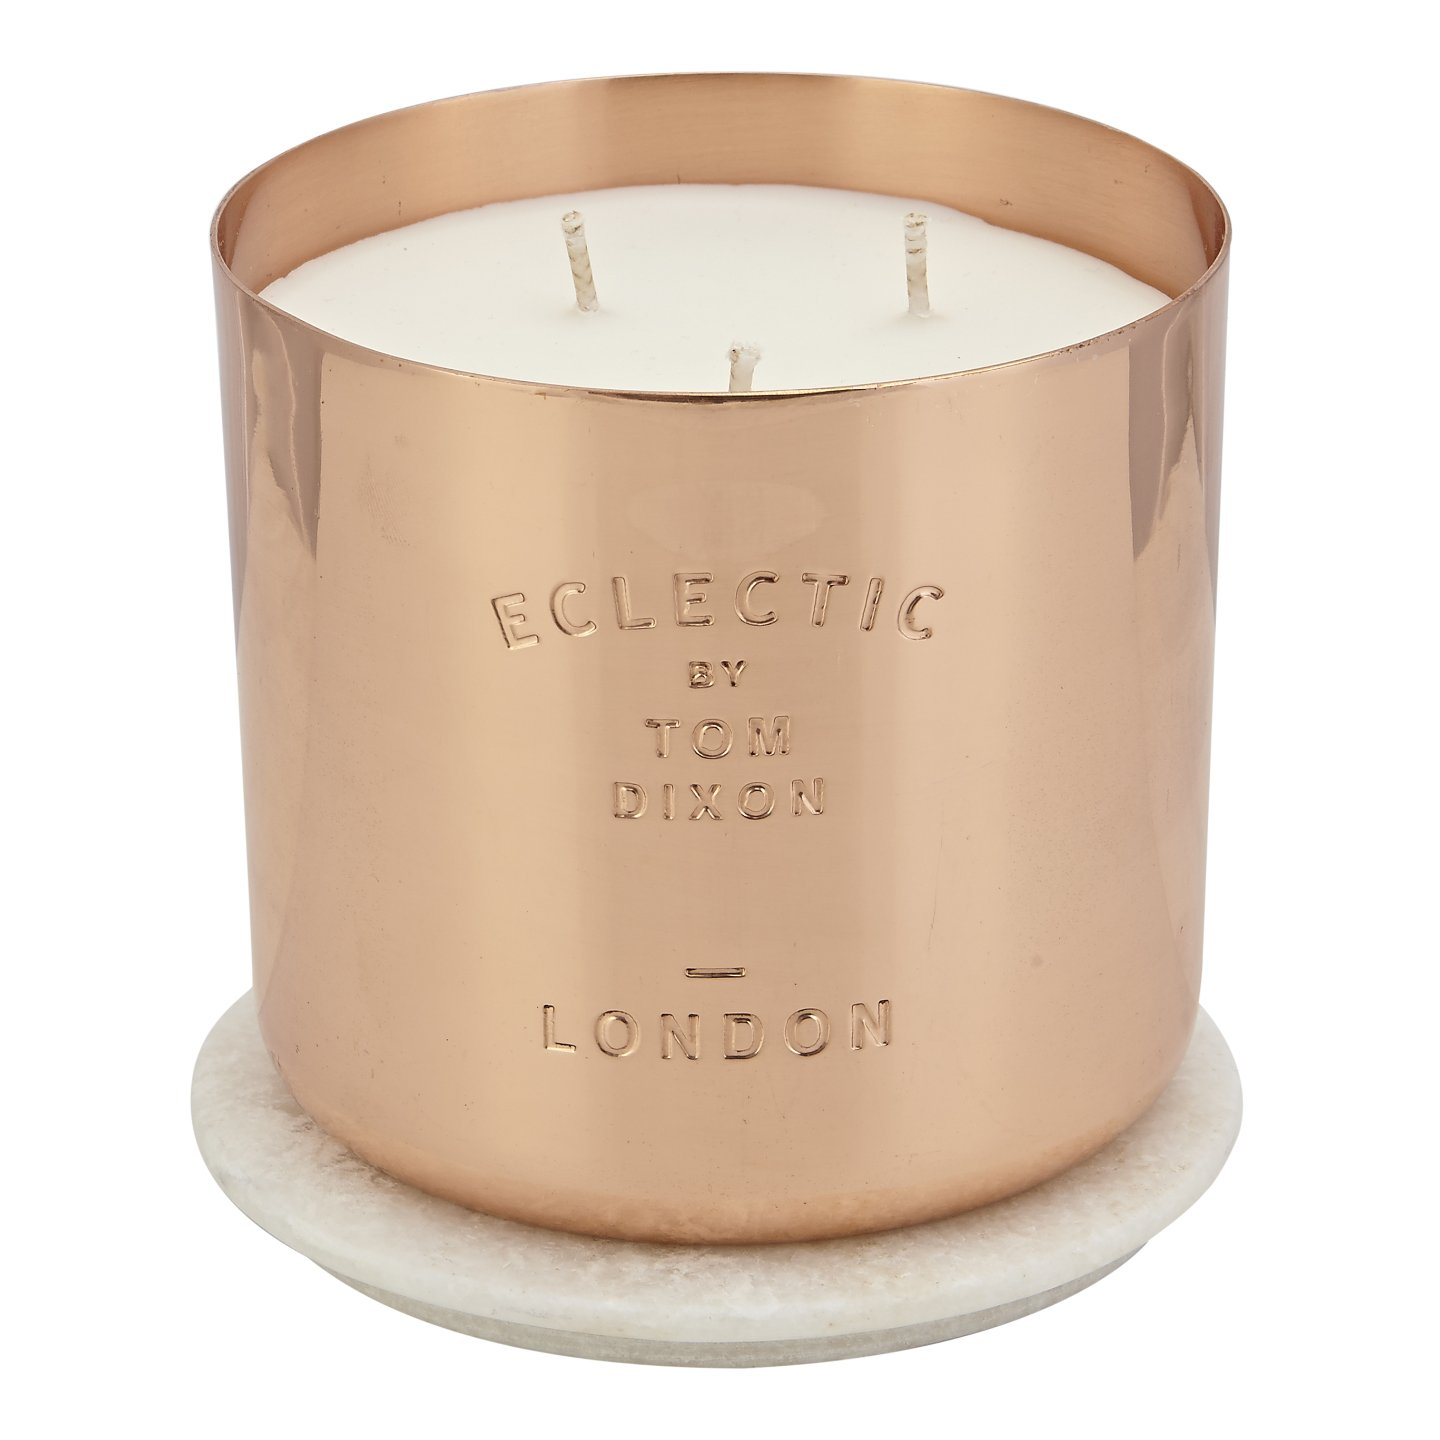 Eclectic Scented Candle London